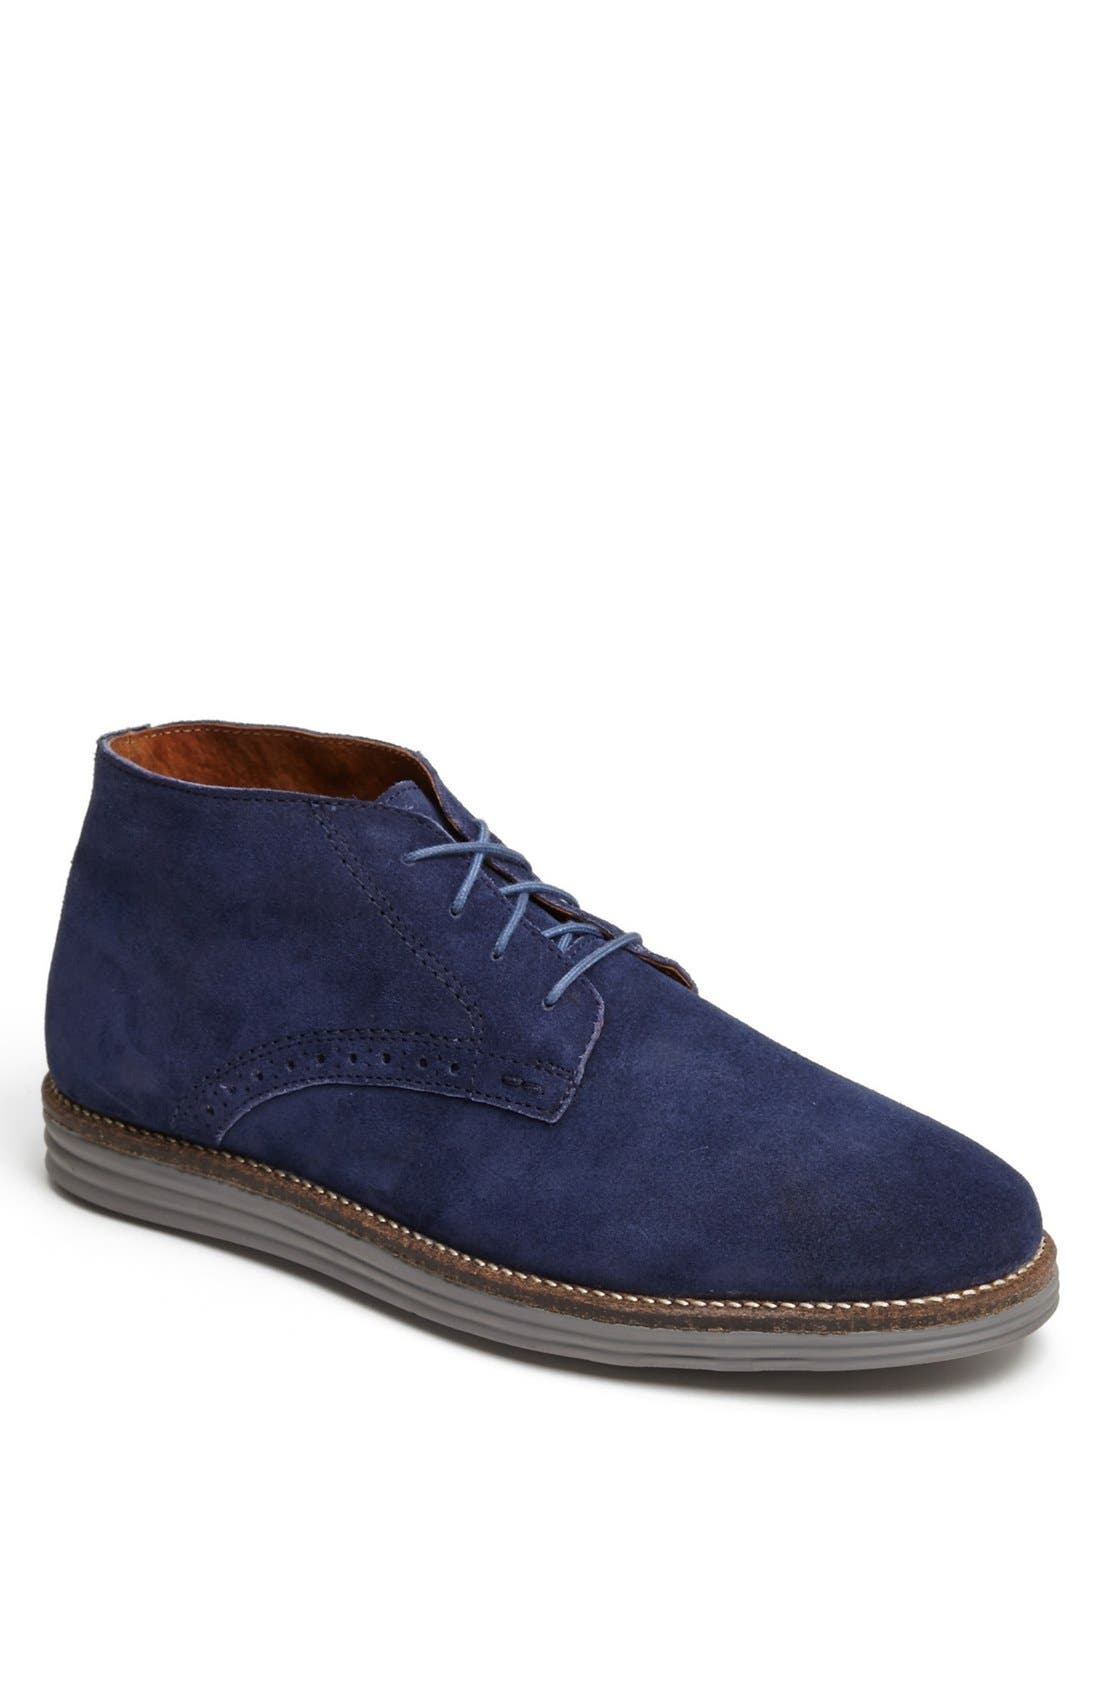 Alternate Image 1 Selected - Ben Sherman 'Zen' Chukka Boot